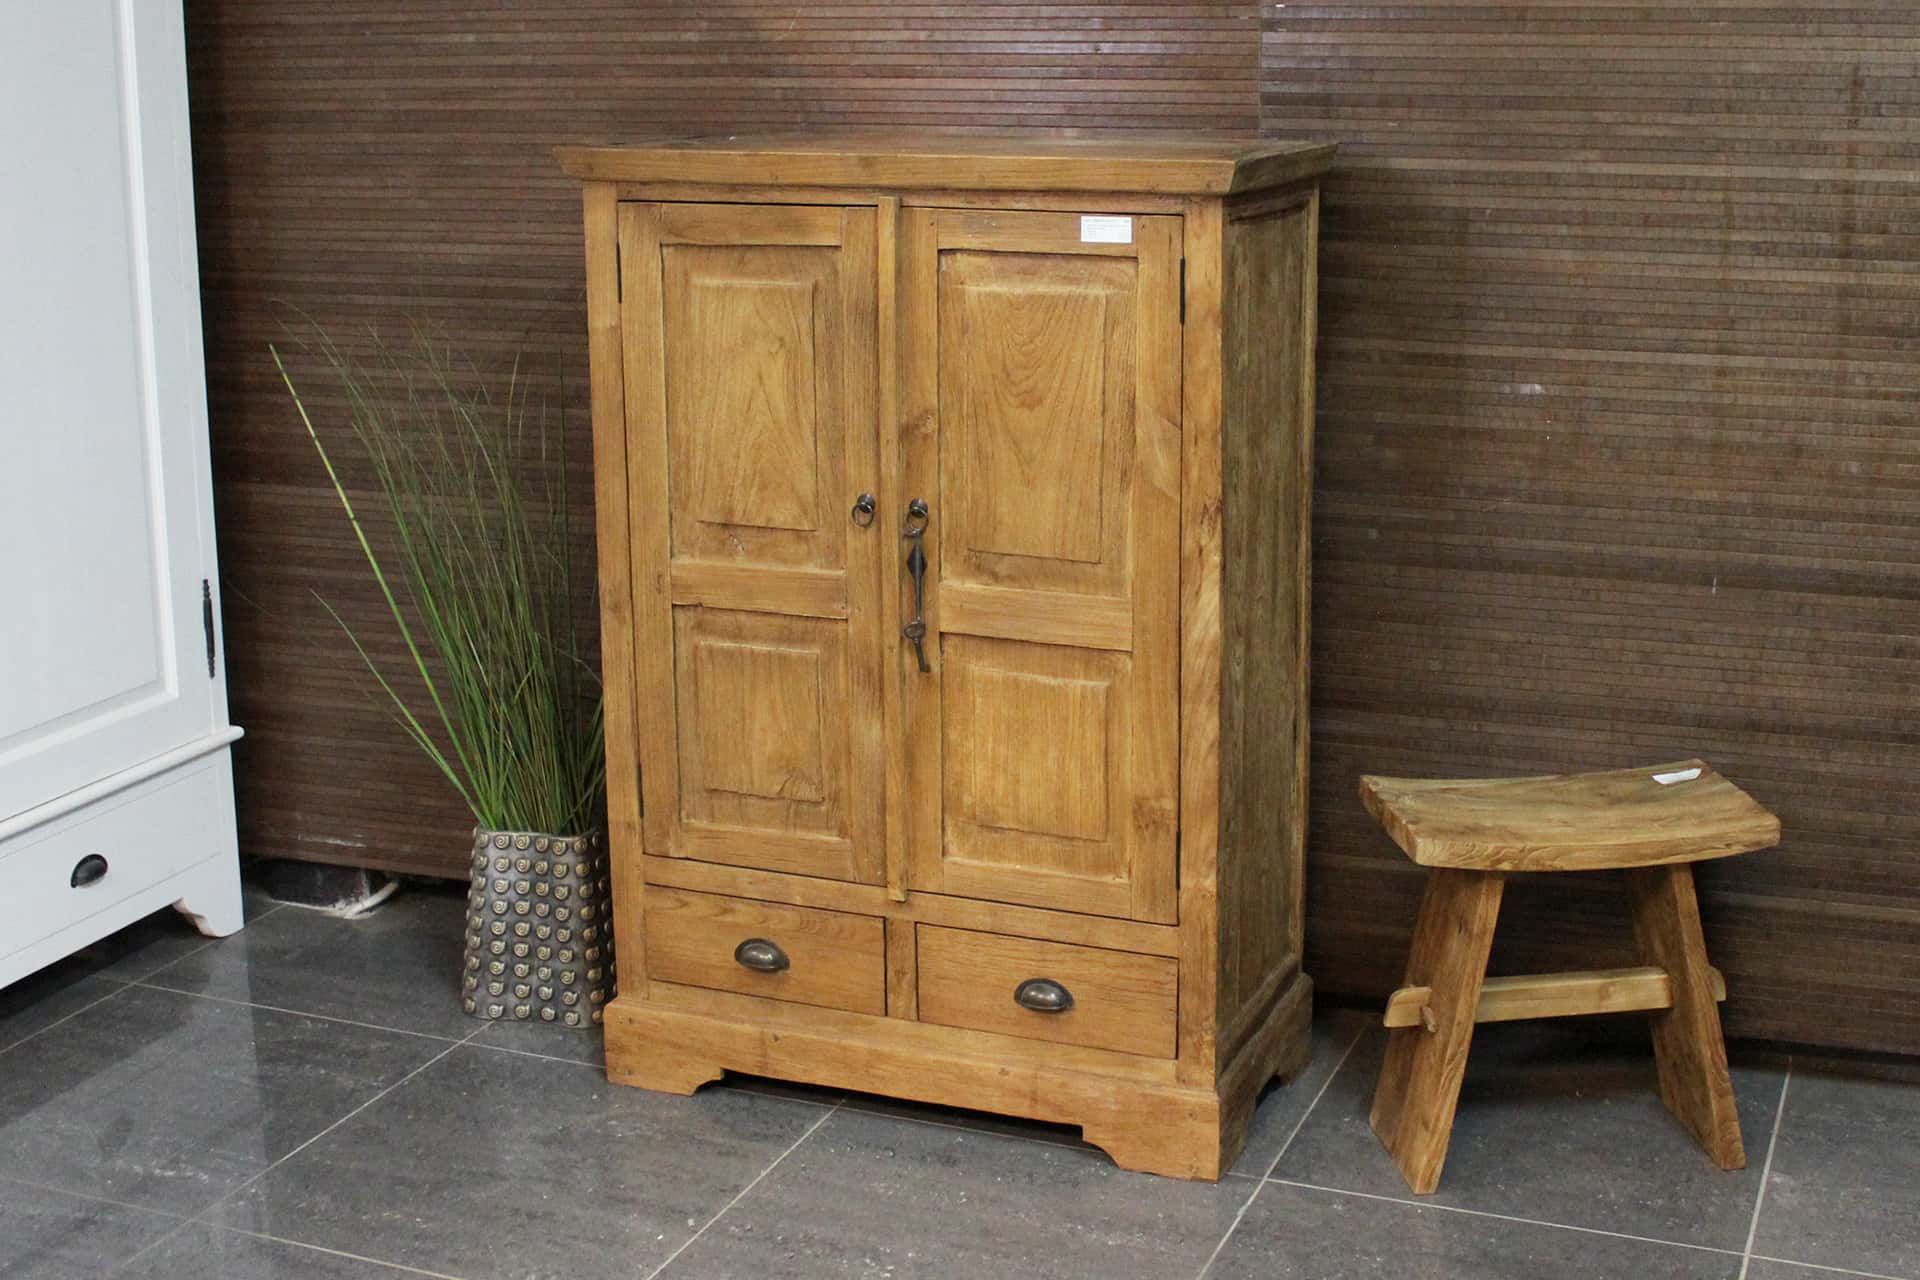 Cuci Lirih 90 Old 2 | small teak cabinet with 2 drawers from Indonesia in brushed old teak. Wall cabinet with revolving doors - teak store TEAK2.